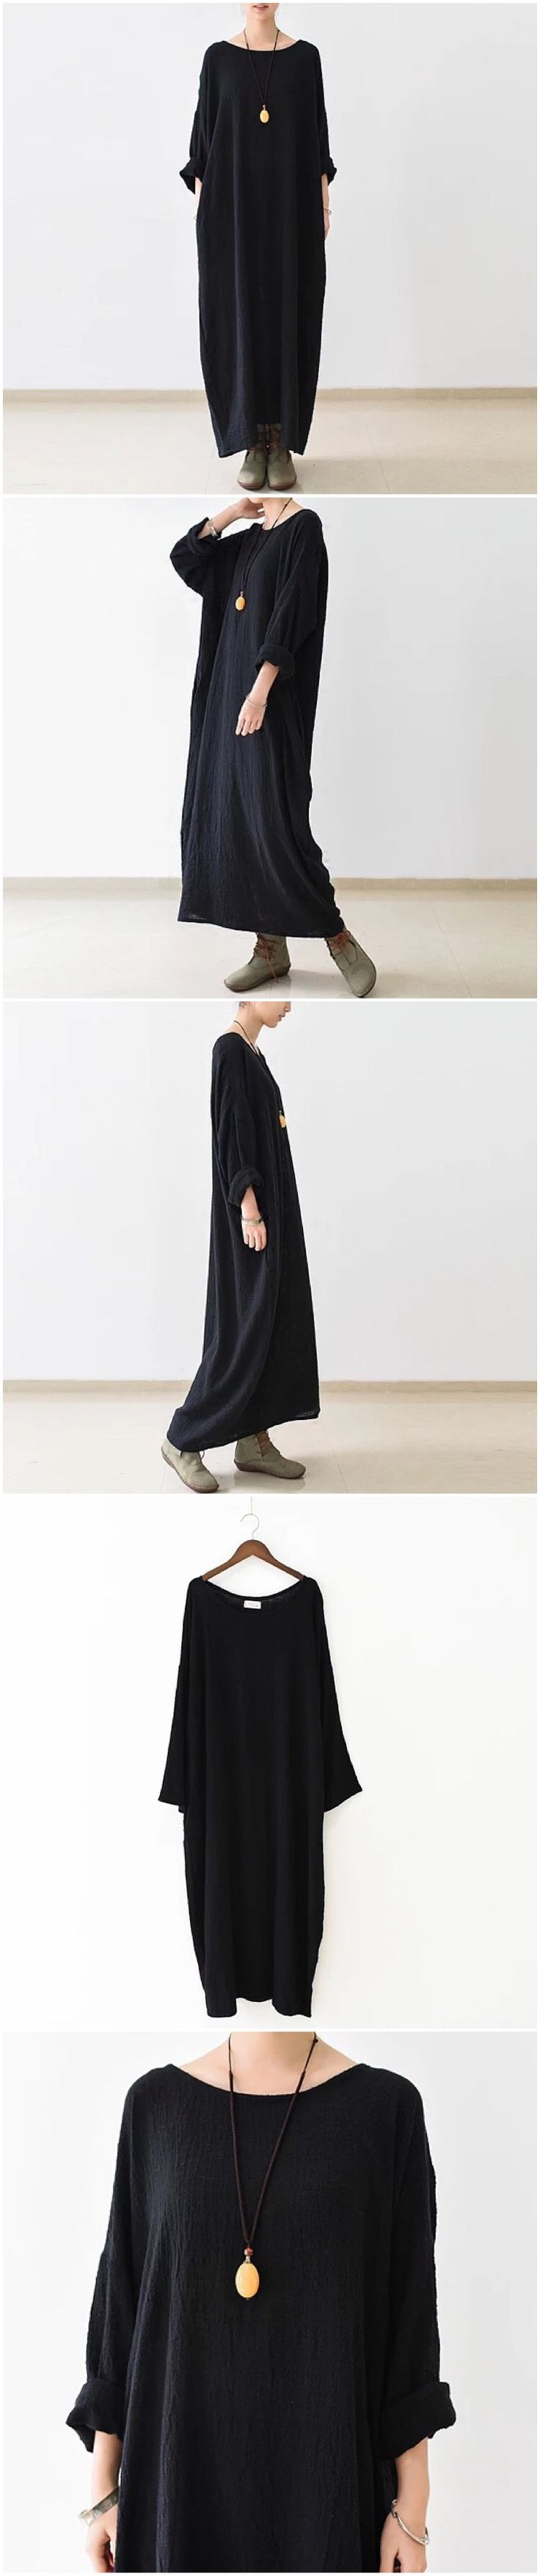 Fabric: Fabric has some stretch Season: Autumn, Spring, Winter Type: Dress Pattern Type: Plain Sleeve Length: Long Sleeve Color: Black Dresses Length:Maxi Style: Casual Material: Cotton & Linen Neckli